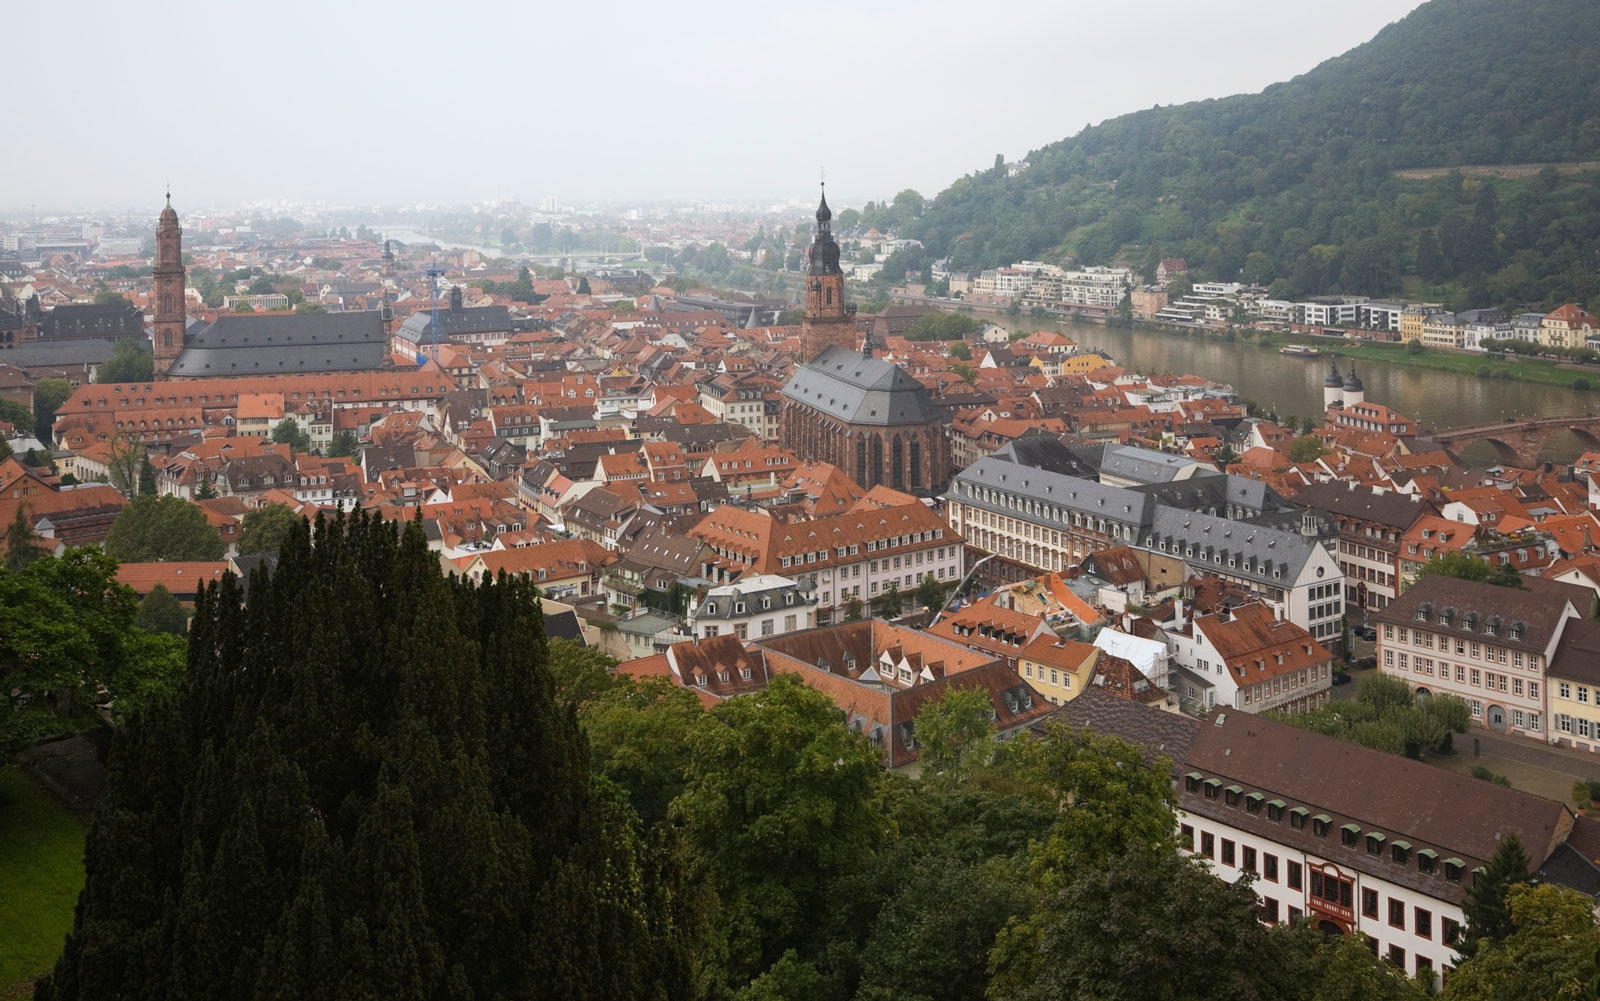 The city of Heidelberg, Germany.